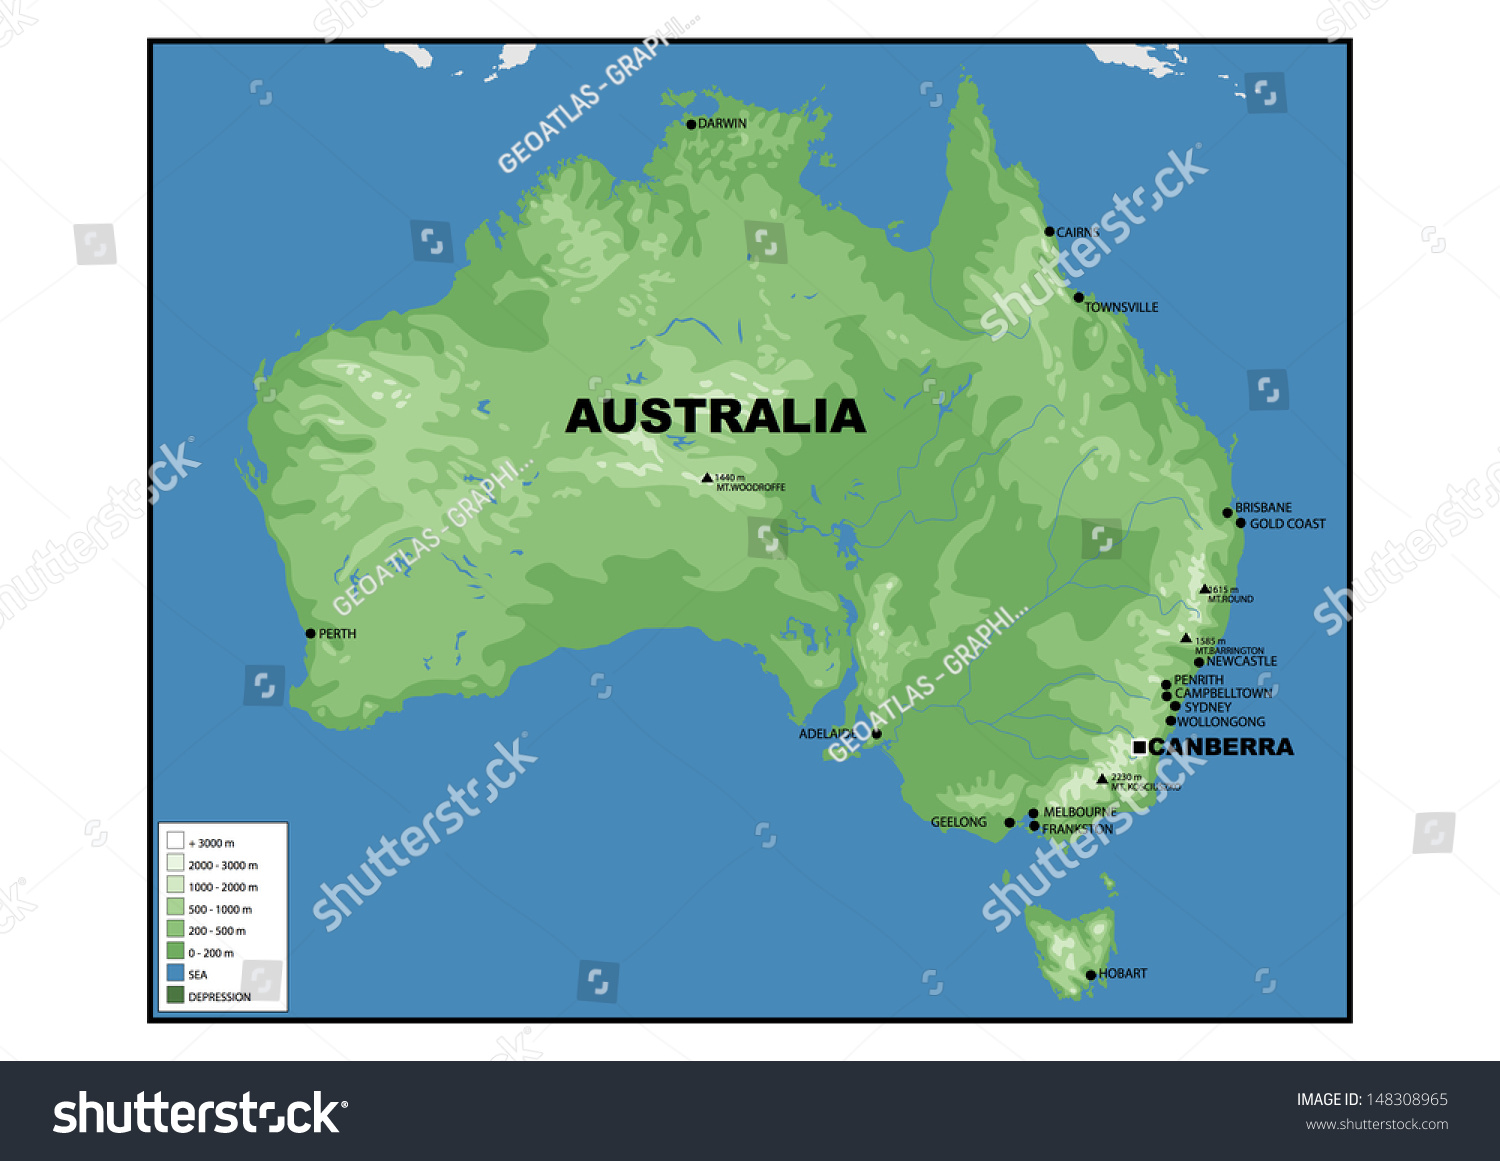 Australia Physical Map Mid Atlantic States Map - Australia physical map